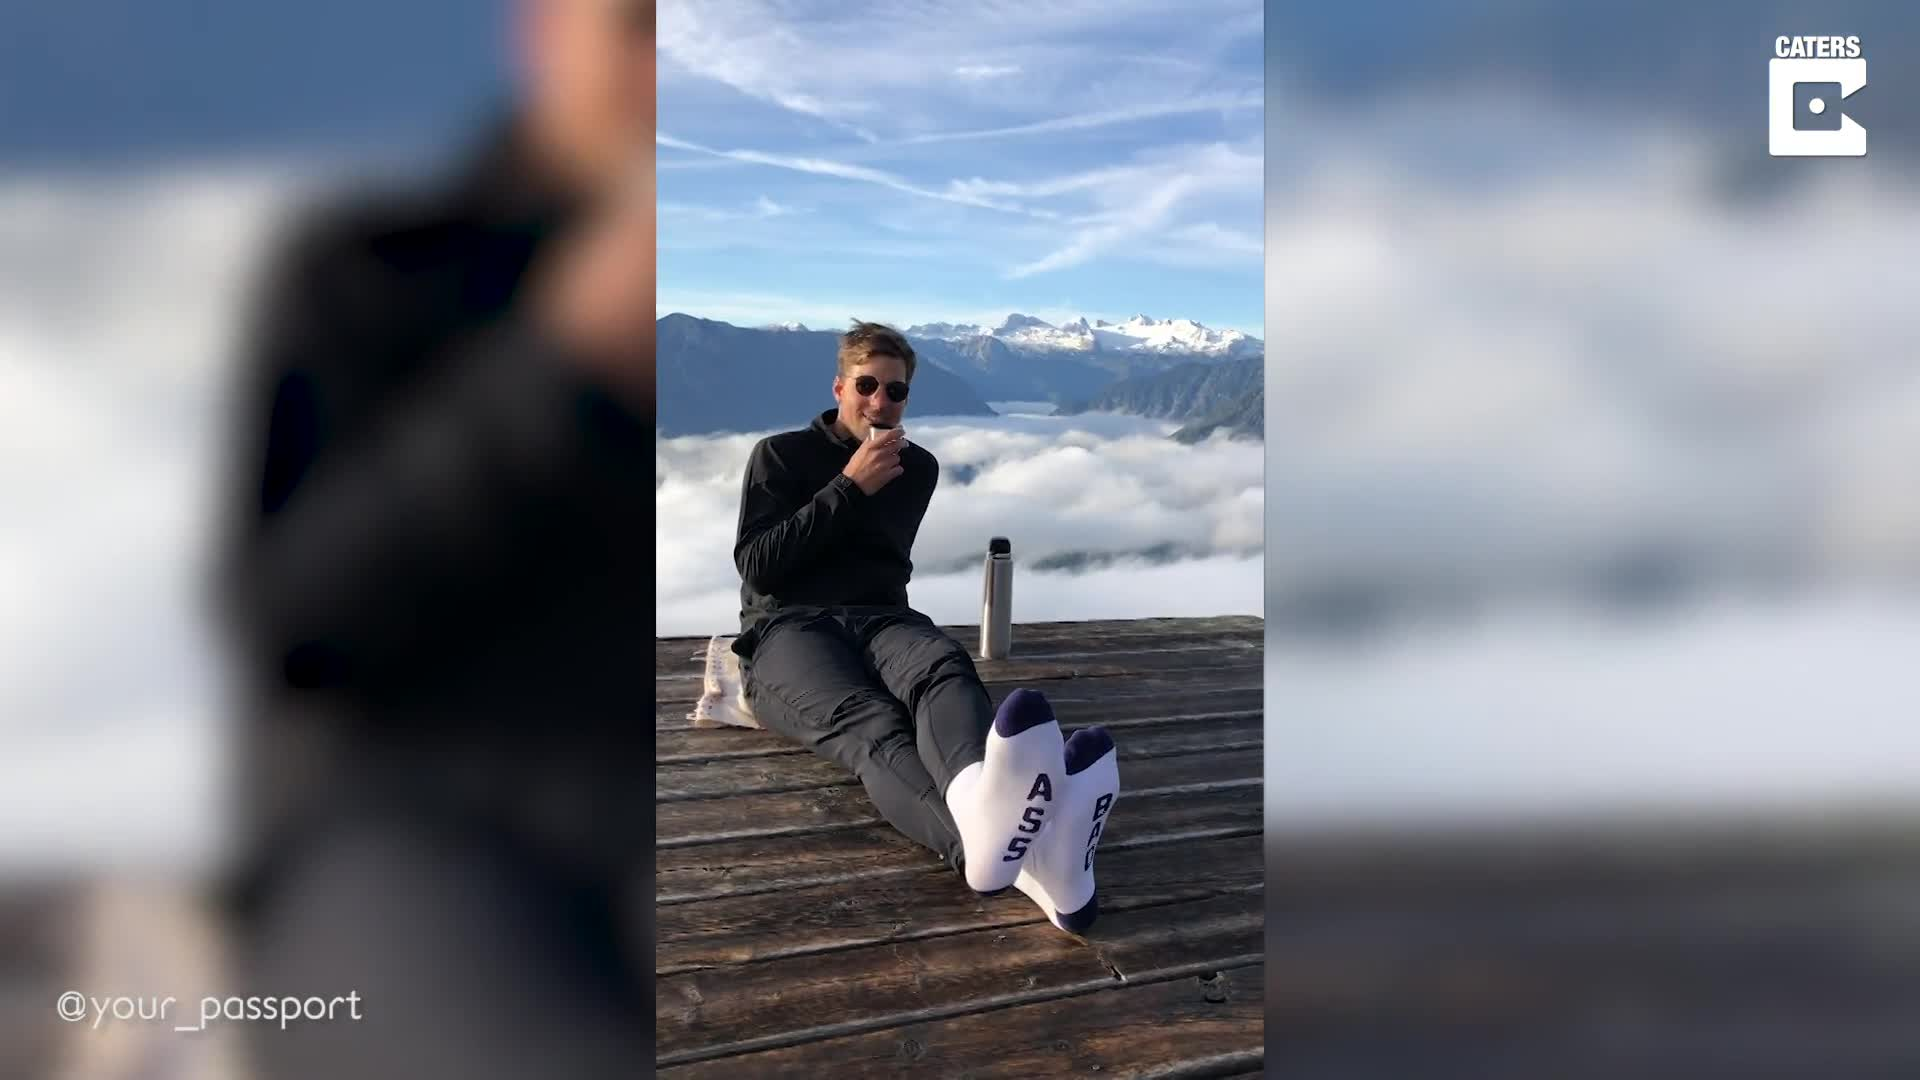 TEA FOR TWO: COUPLE SHARE CUP OF TEA IN CLOUDS WITH STUNNING VIEWS OF AUSTRIAN MOUNTAIN RANGE